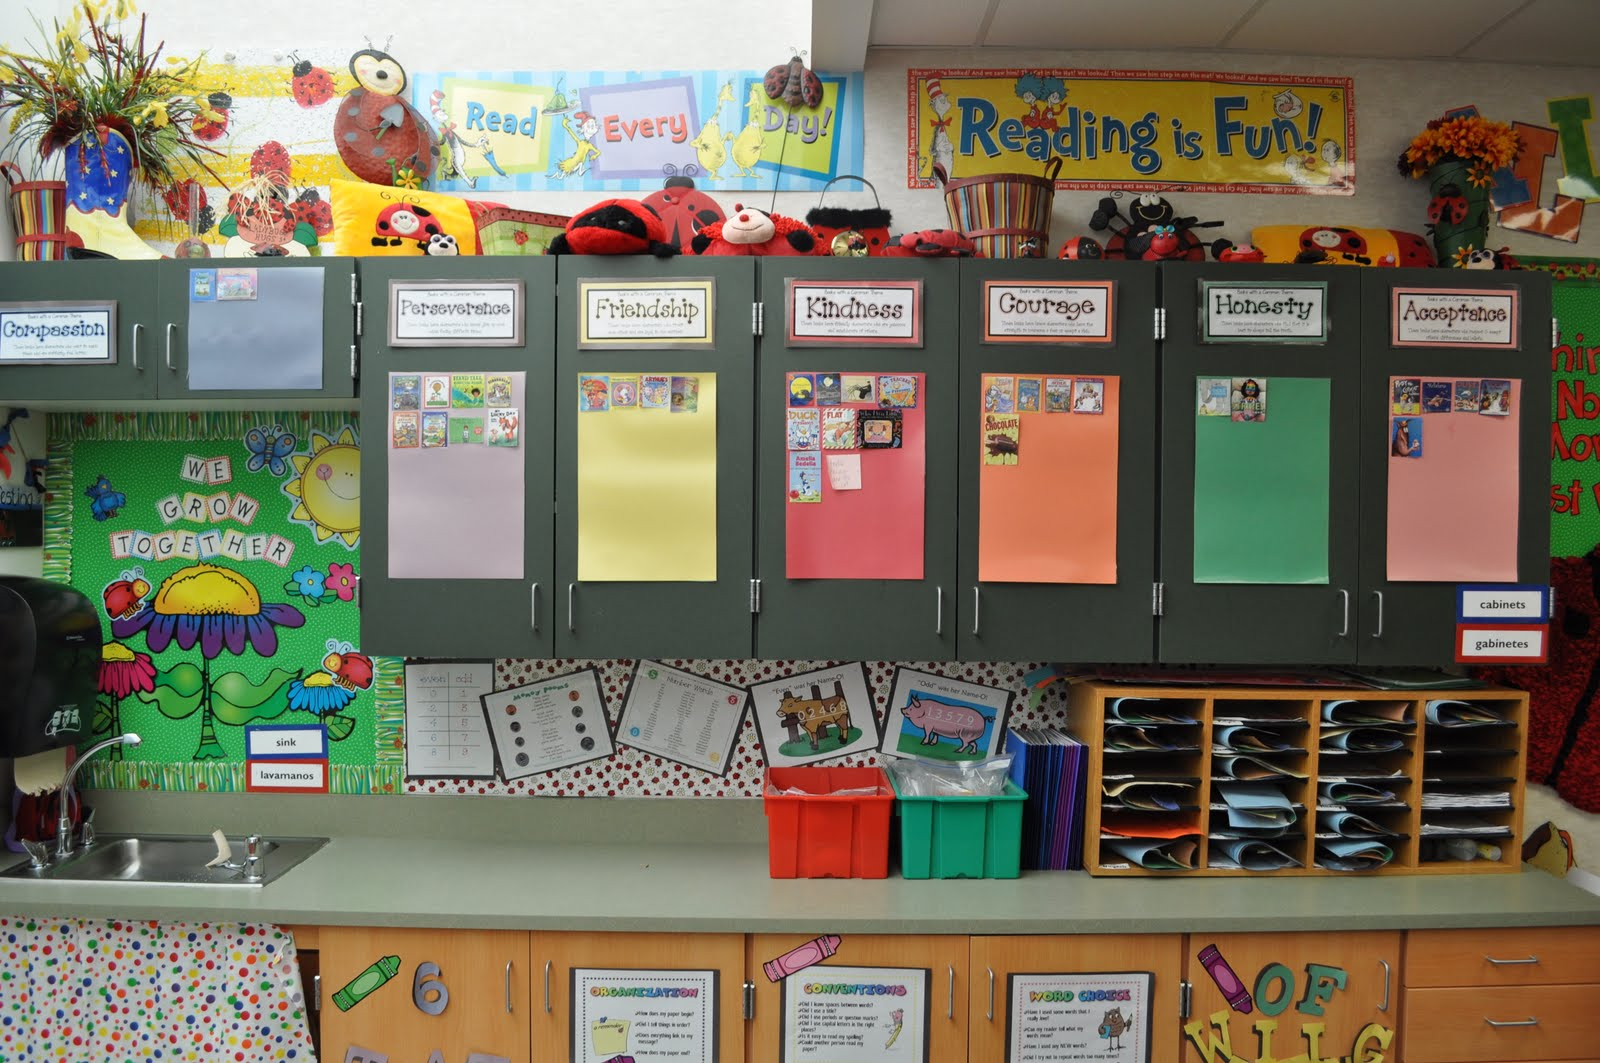 Accelerated Reader Bulletin Boards http://www.nbu.bg/cogs/personal/radu/pas/accelerated-reader-bulletin-board-ideas&page=3